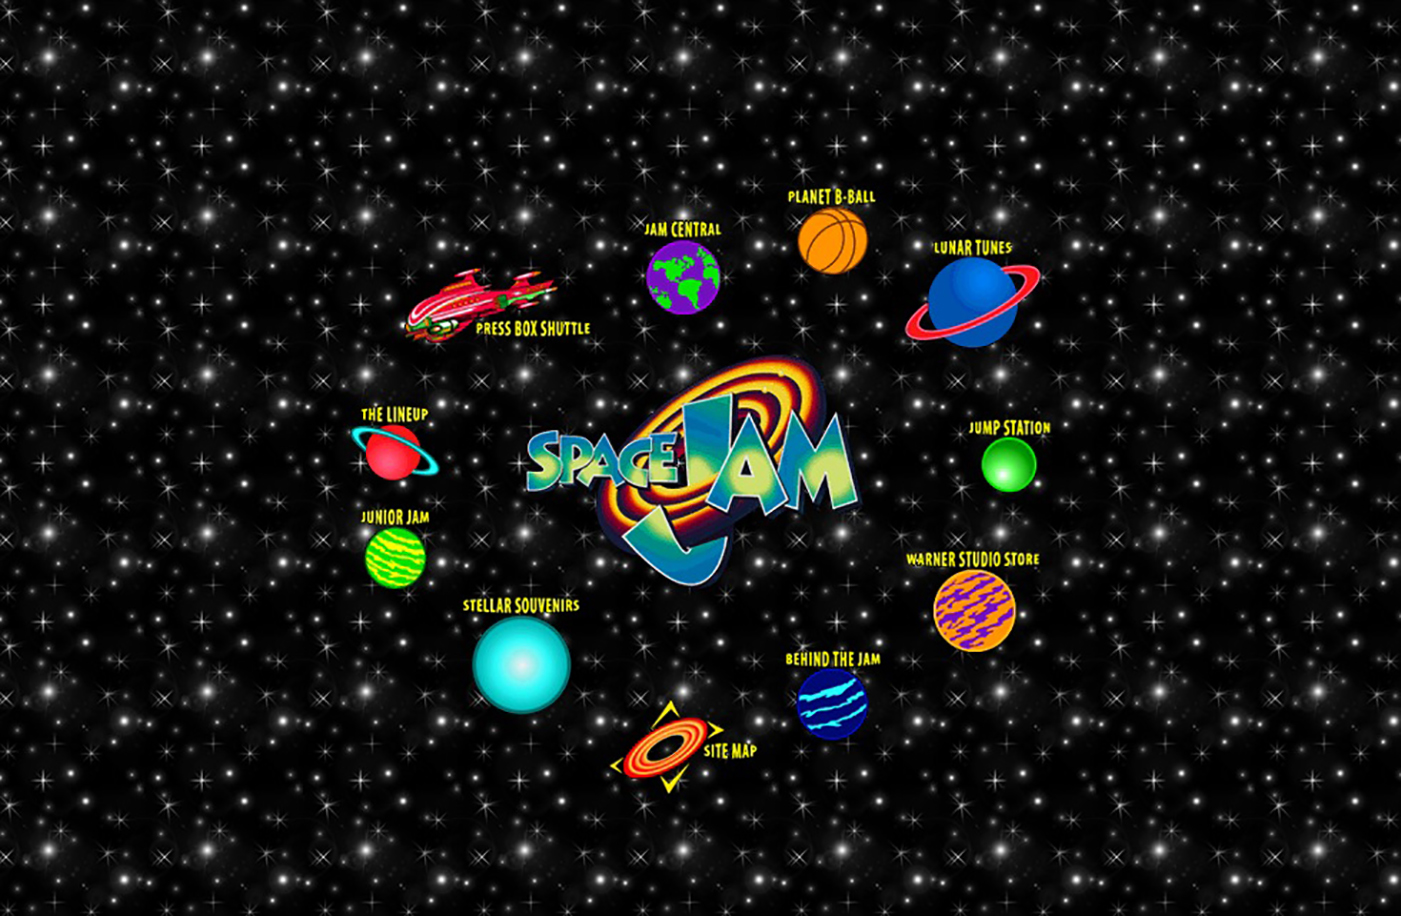 'Space Jam' Forever: The Website That Wouldn't Die